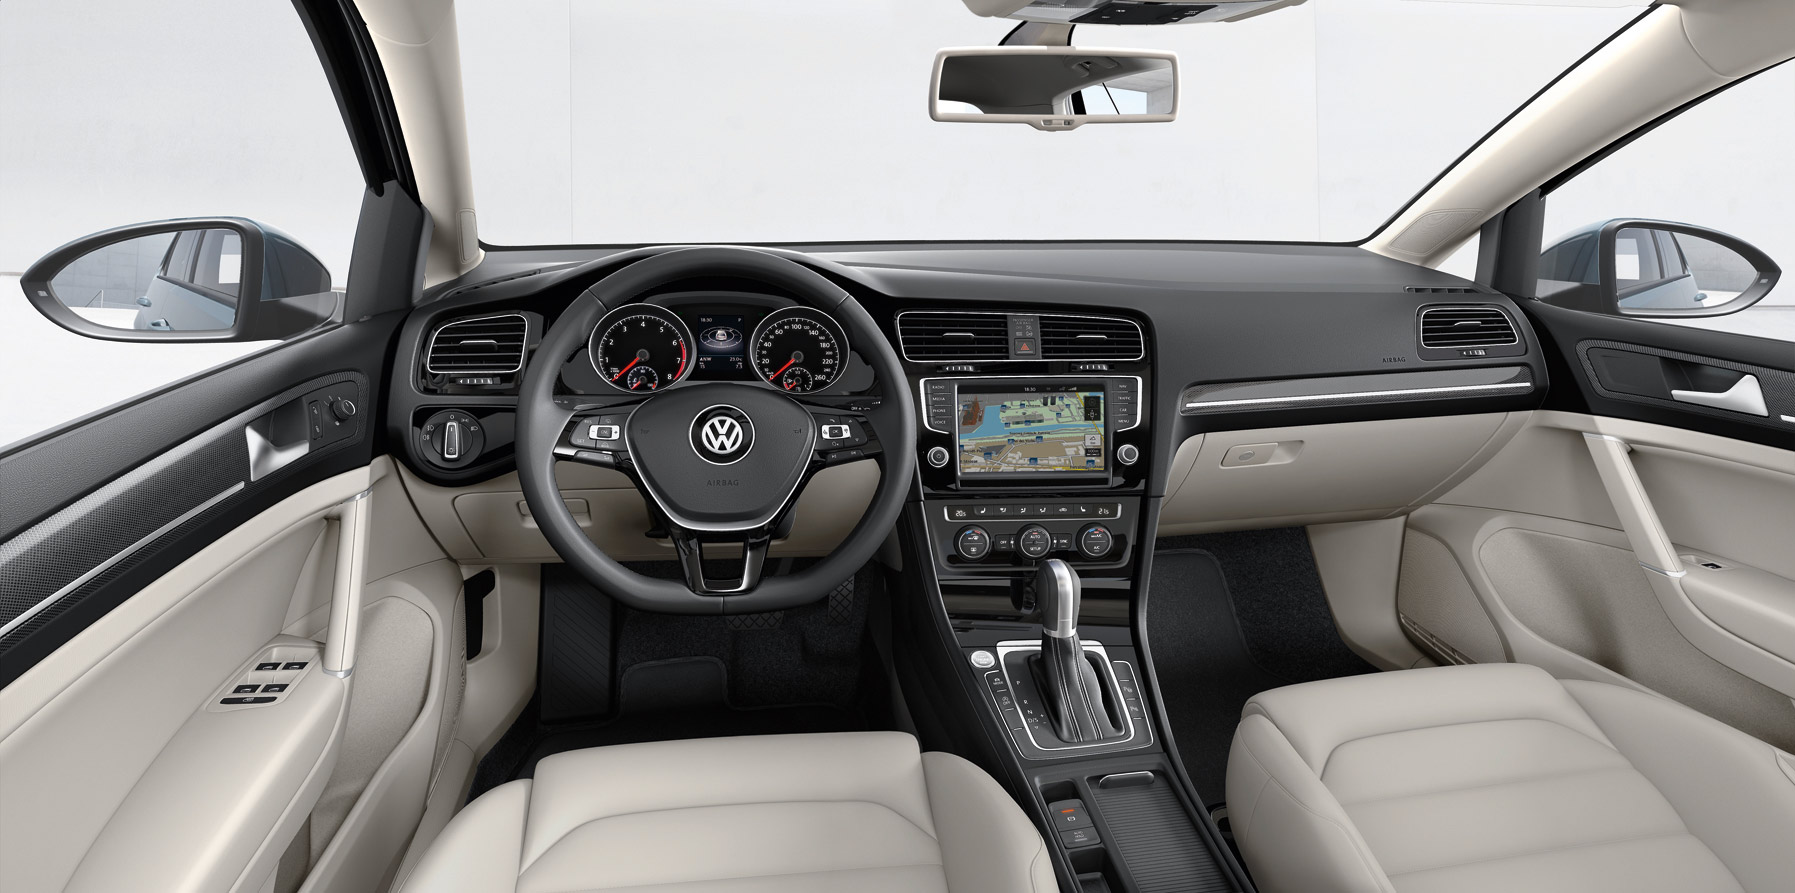 volkswagen golf 7 interior 9 vwvortex. Black Bedroom Furniture Sets. Home Design Ideas